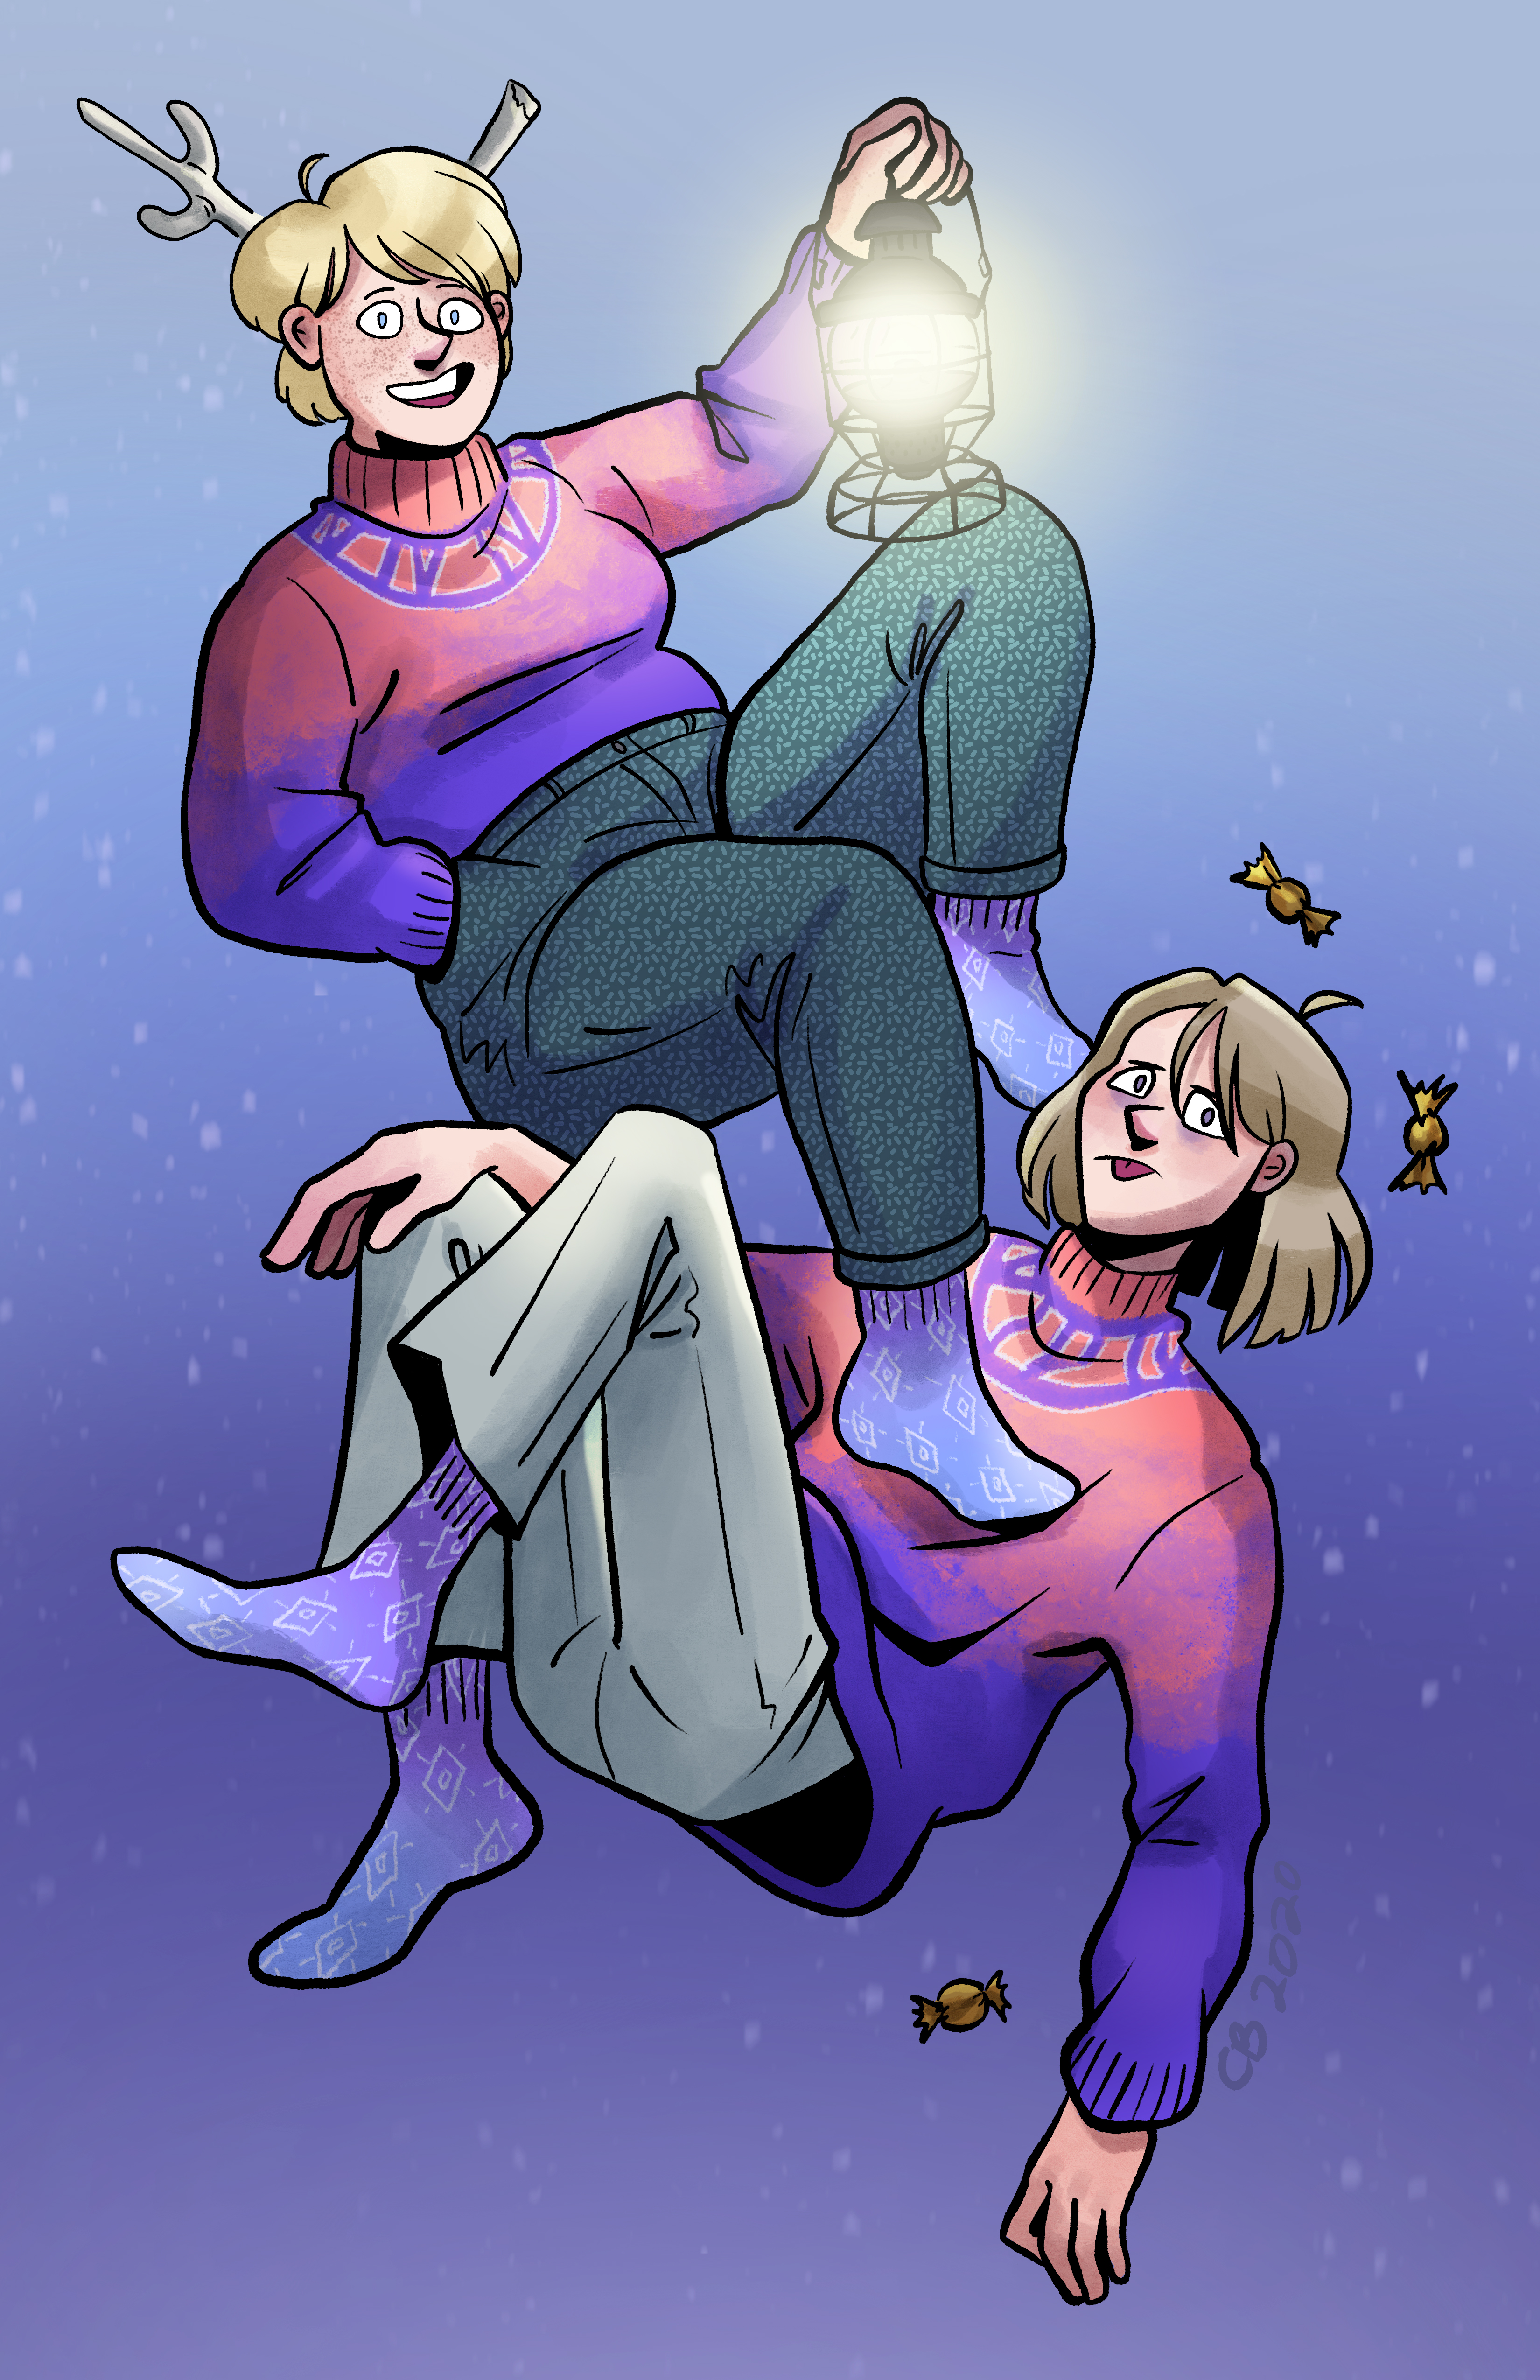 Freya and Corin are sitting/floating in front of a purple/blue gradient background. Freya, holding a lantern, is happy, while Corin, whom Freya is stepping on, is displeased.